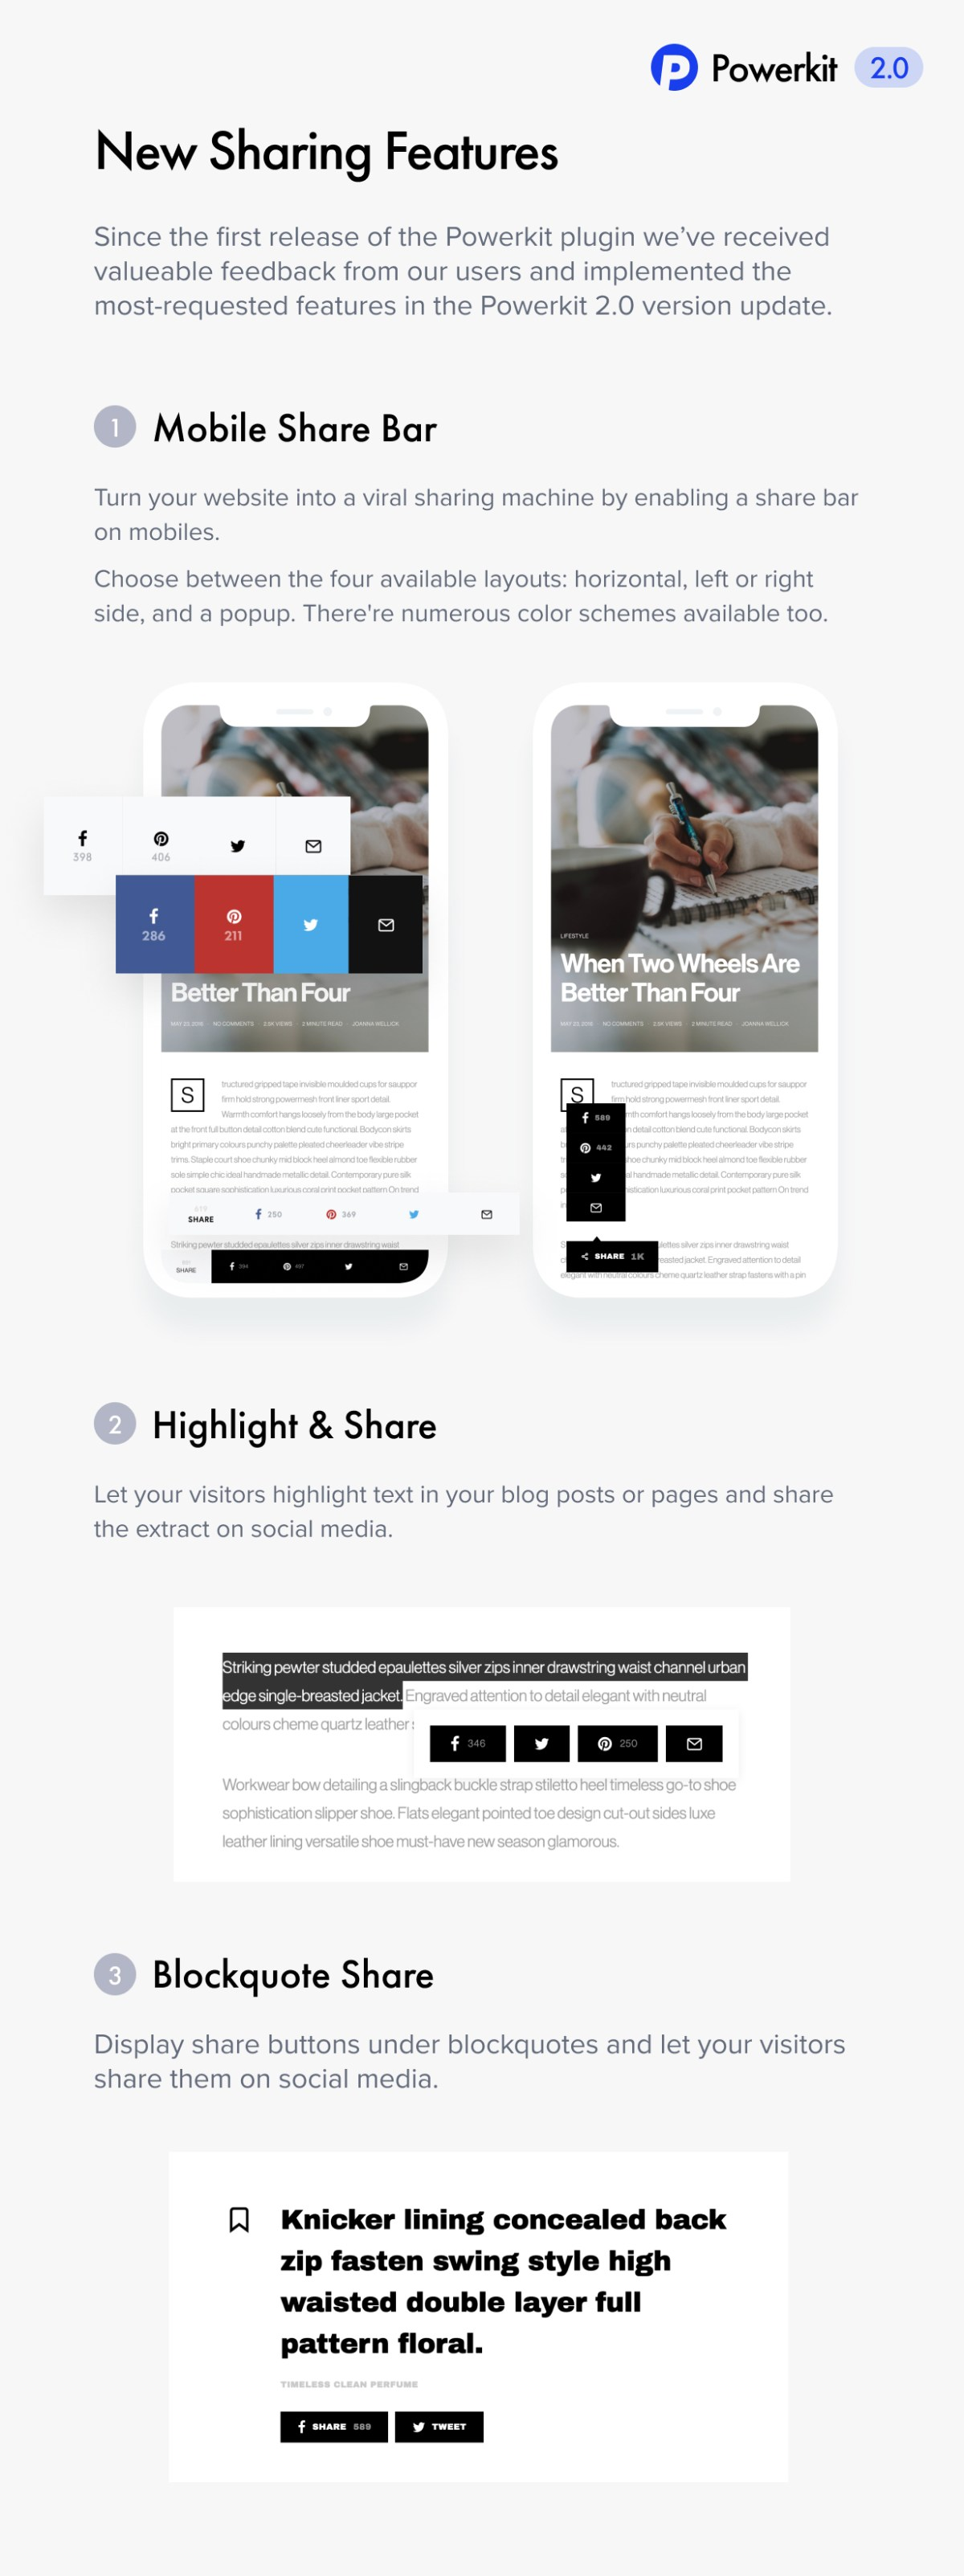 Sharing Features